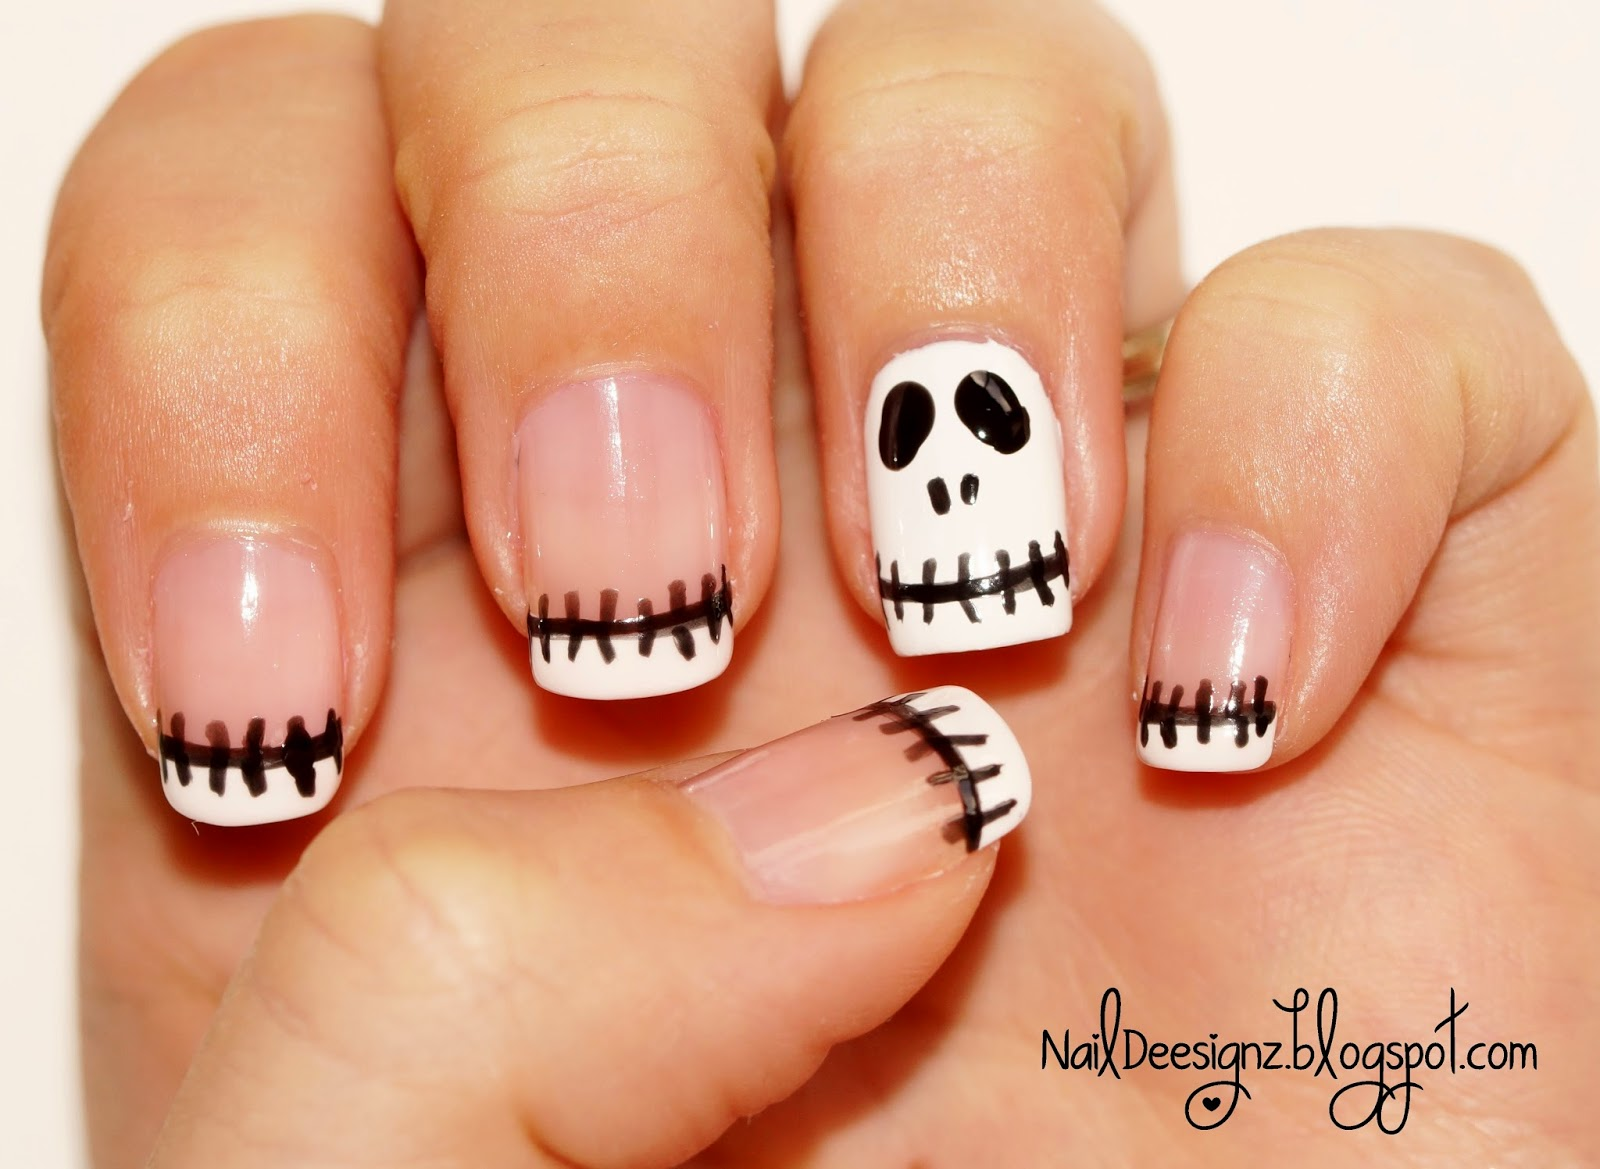 Naildeesignz Skeleton Nail Art